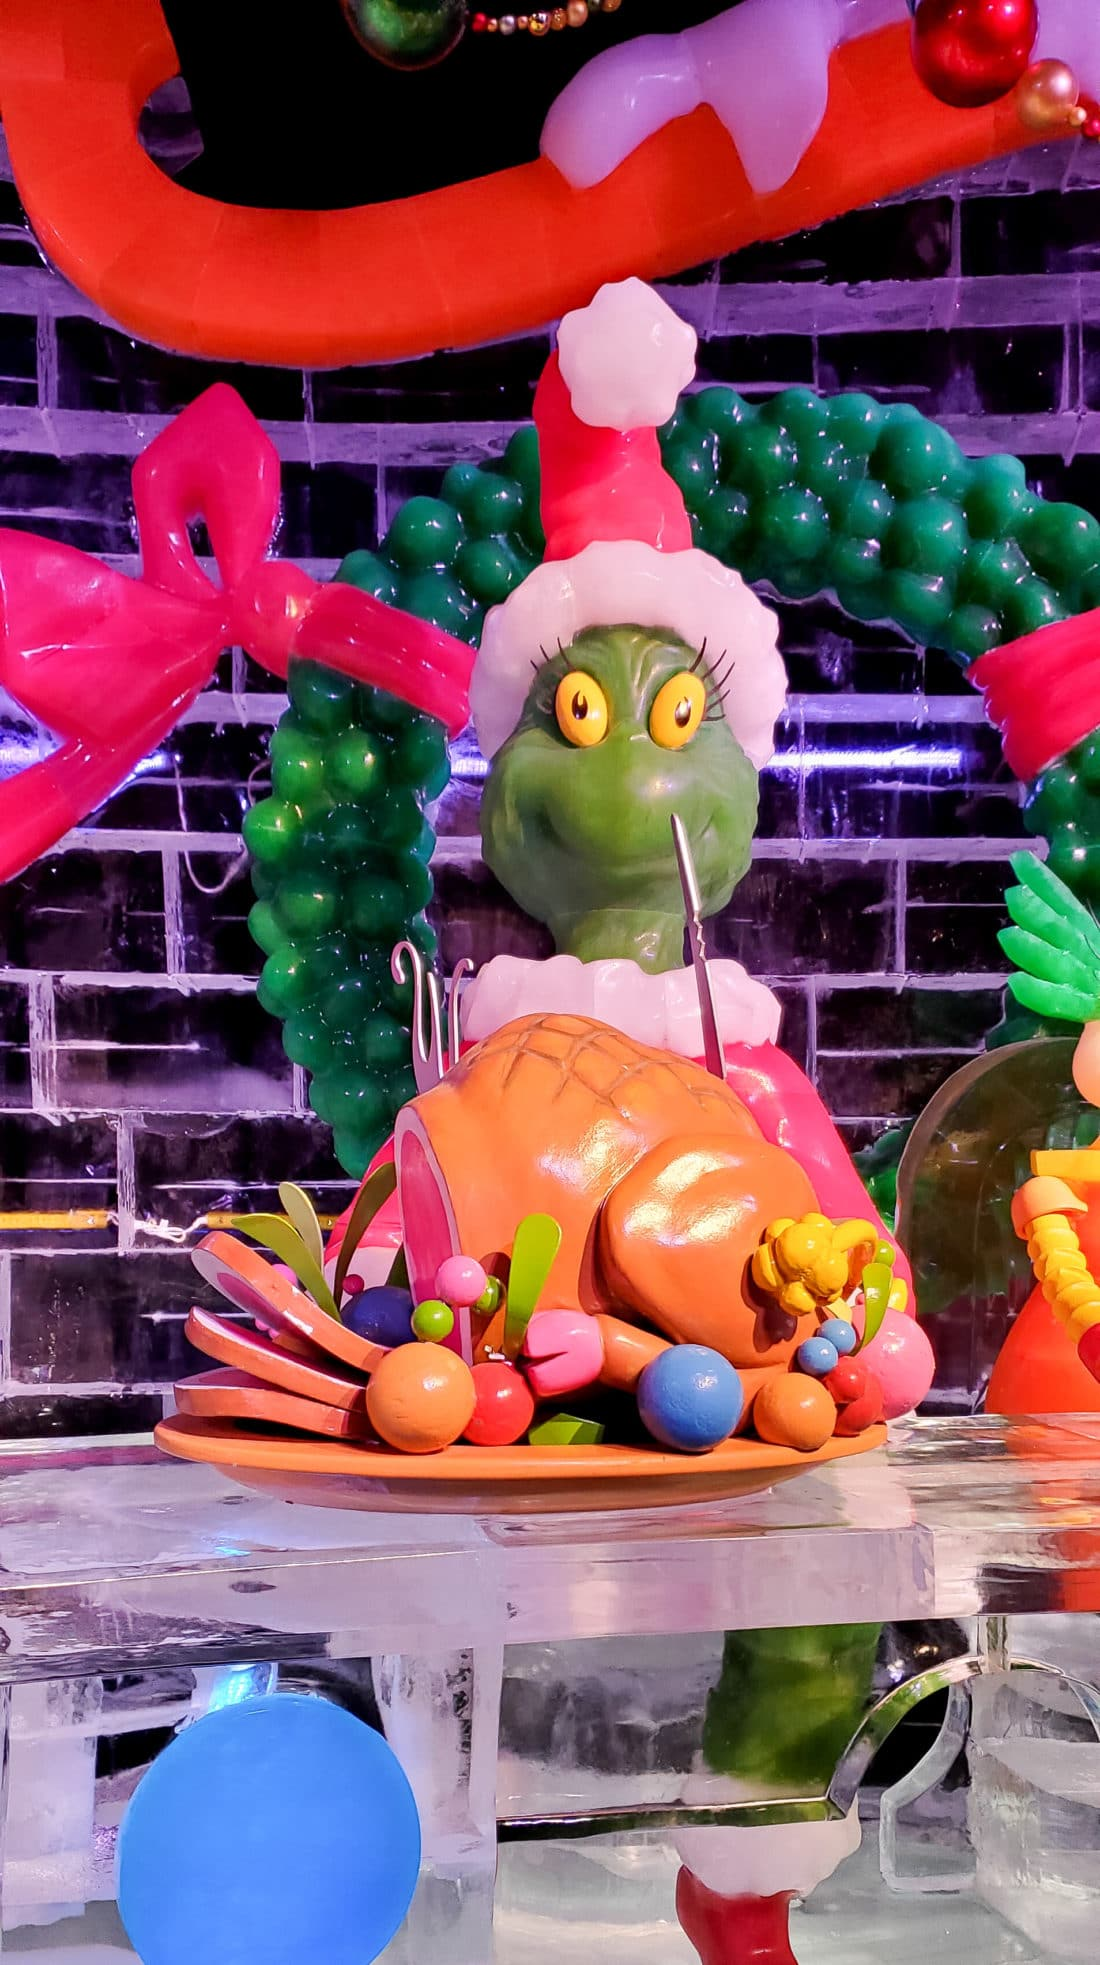 ICE How The Grinch Stole Christmas Feast. The must-see holiday attraction is back! ICE! featuring the 1957 Dr. Seuss classic, How The Grinch Stole Christmas! Watch how the Grinch tries to steal Christmas from the Whos of Who-ville through interactive ice sculptures and displays.